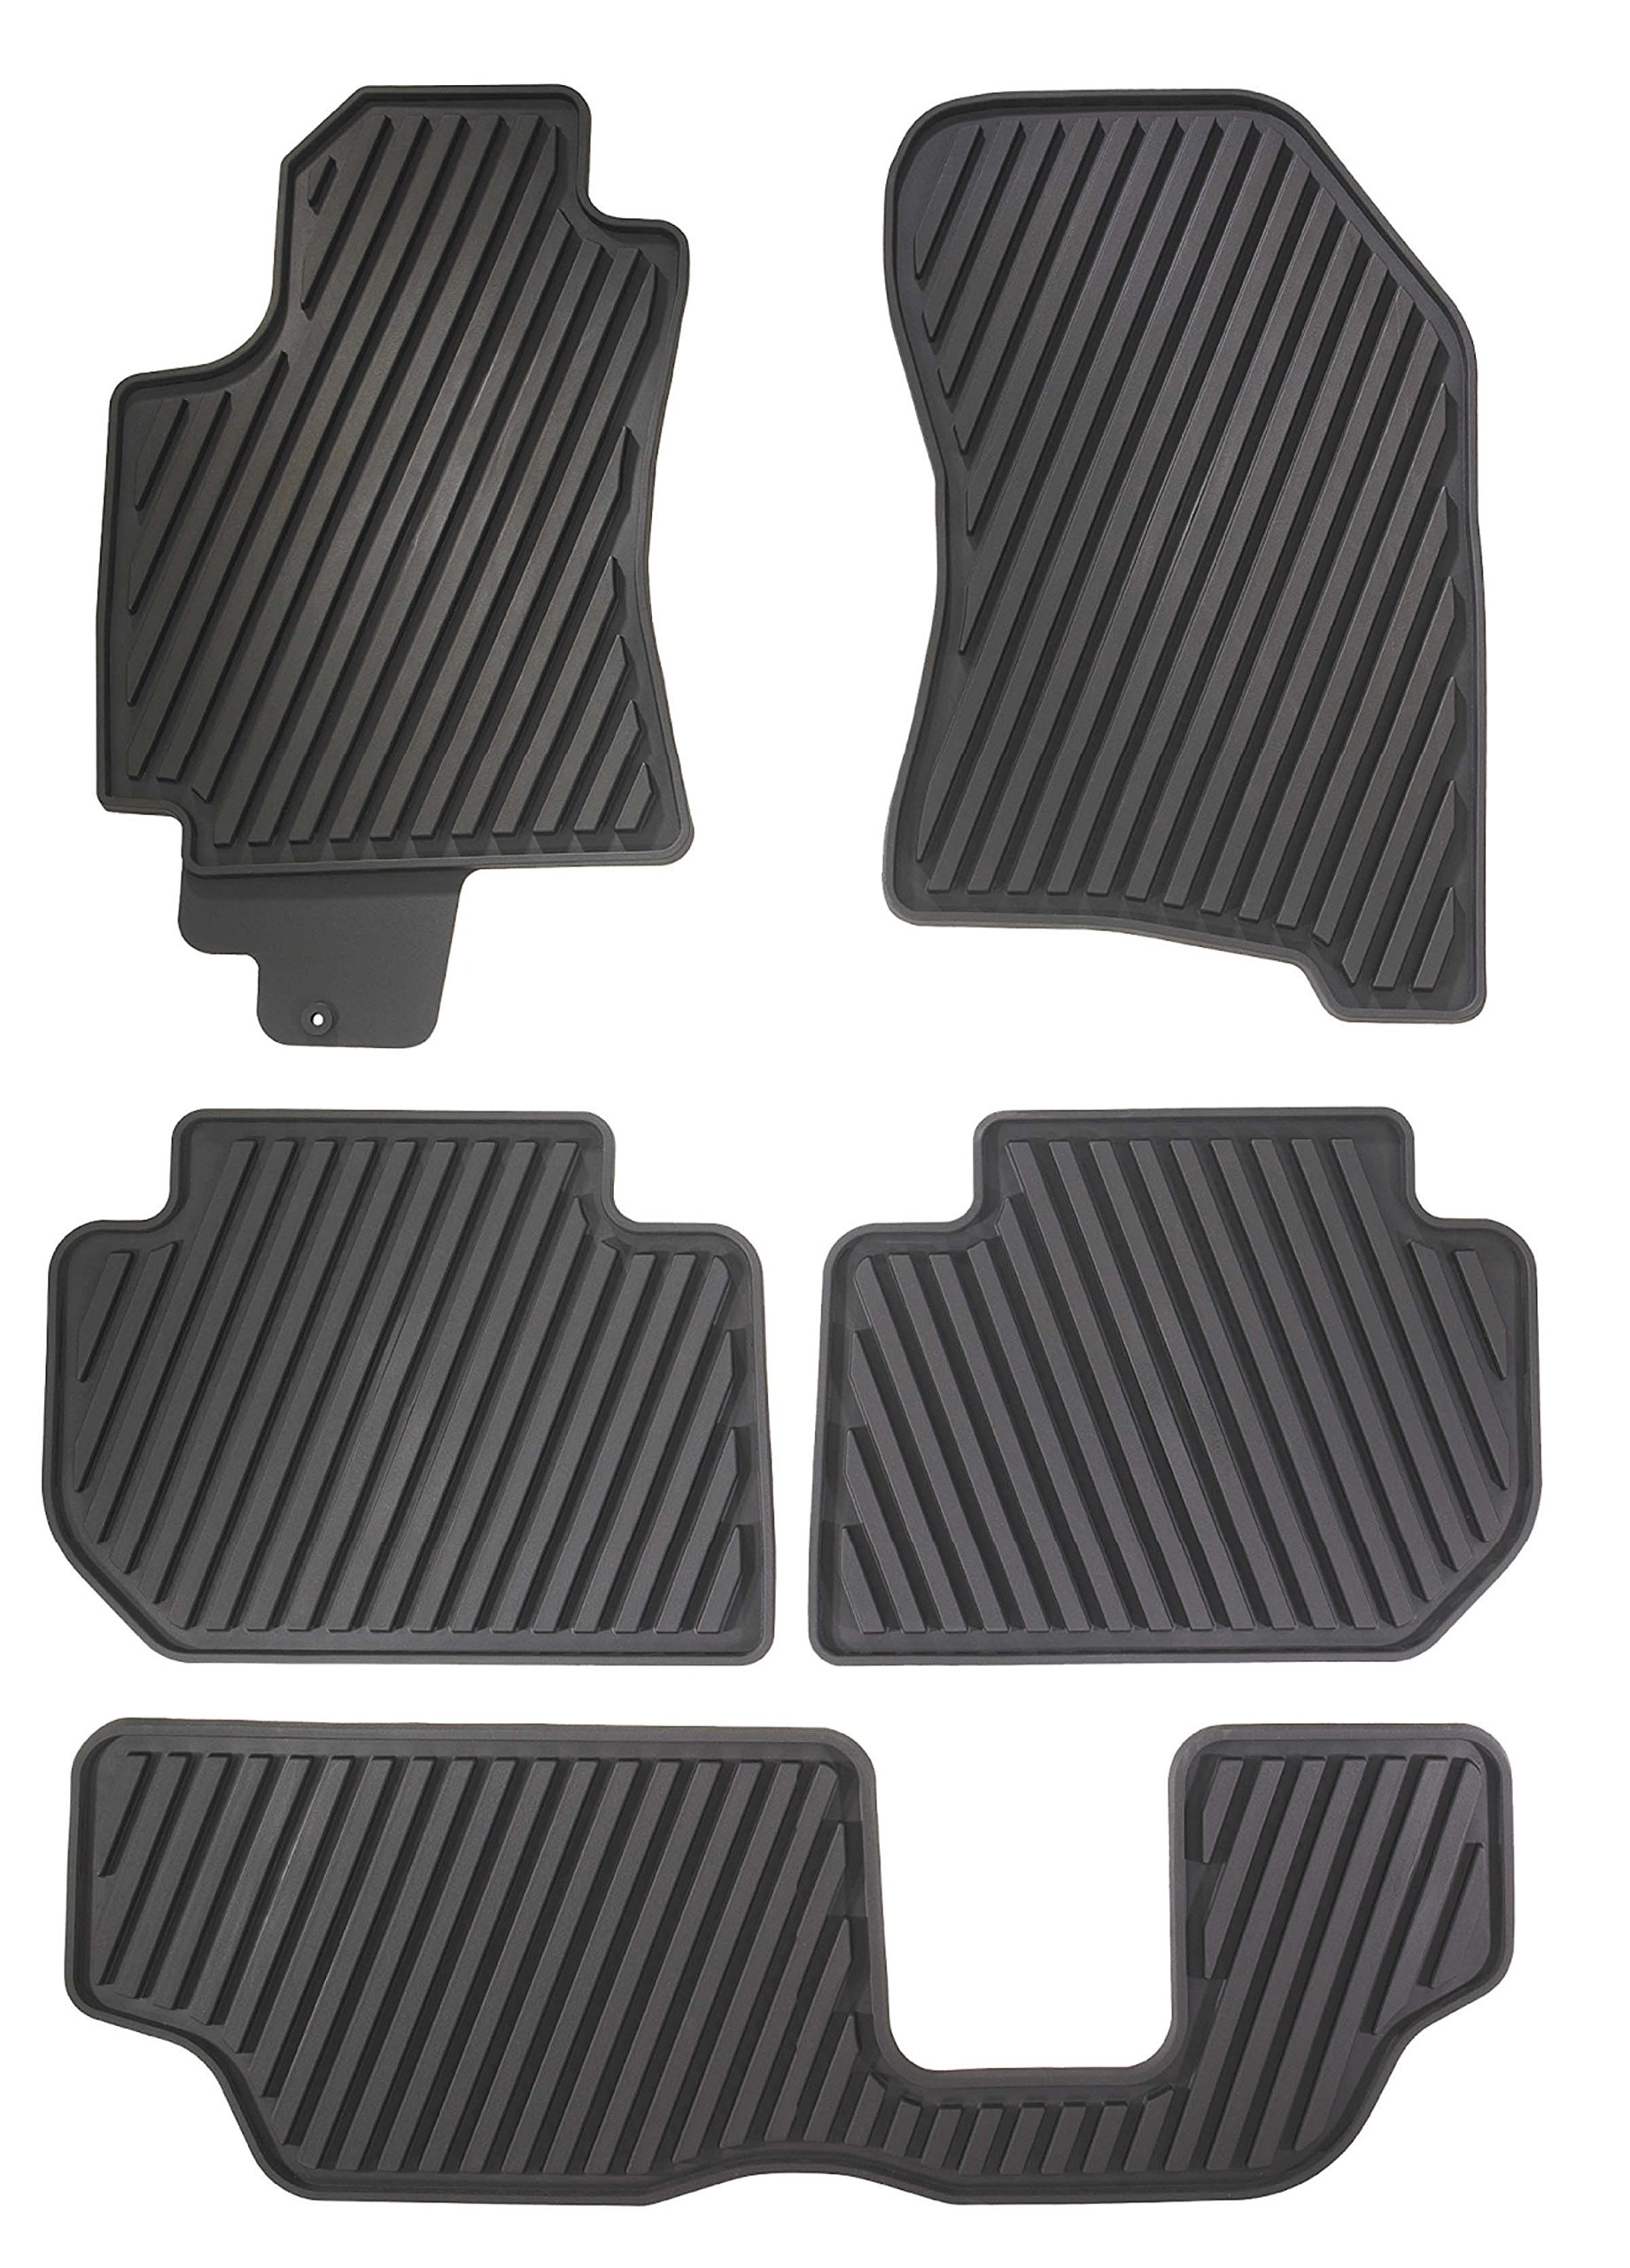 Subaru Genuine J501SXA200 Floor Mat